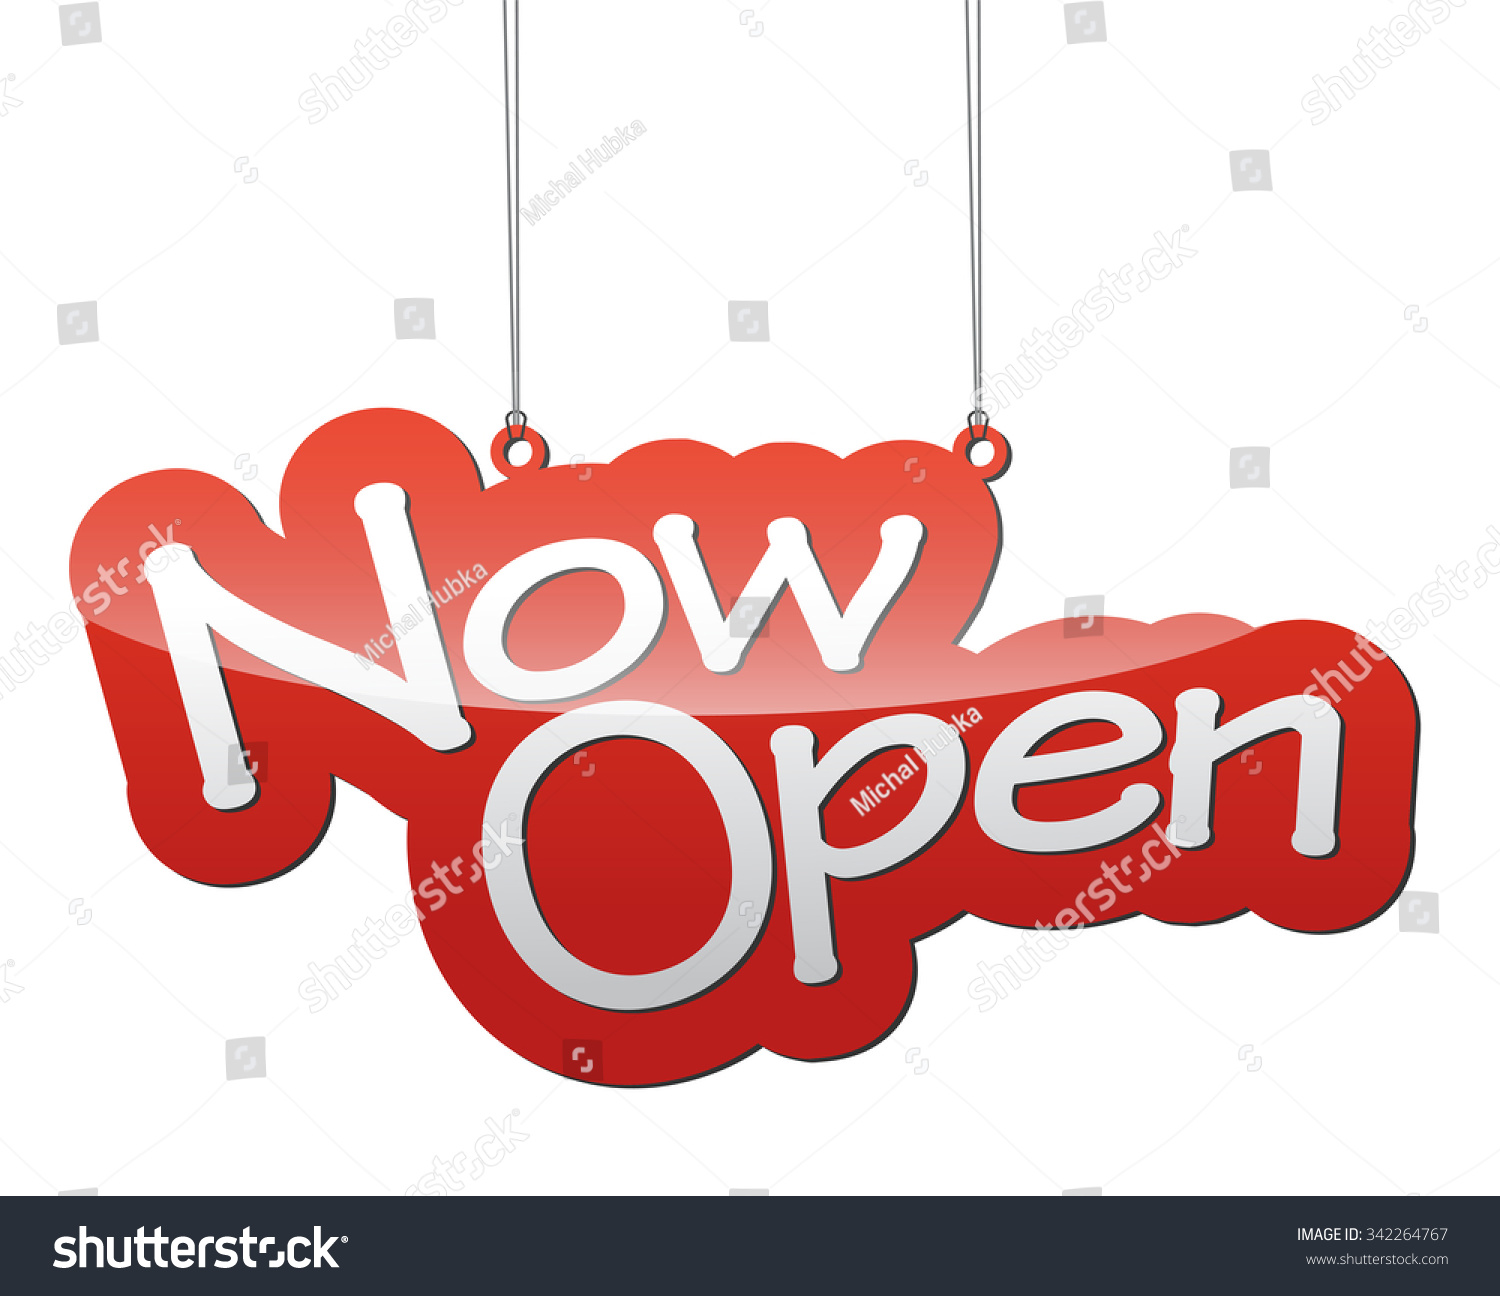 Http Www Shutterstock Com Pic 342264767 Stock Vector Now Open Red Vector Now Open Red Tag Now Open Background Now Open Illustration Now Open Html